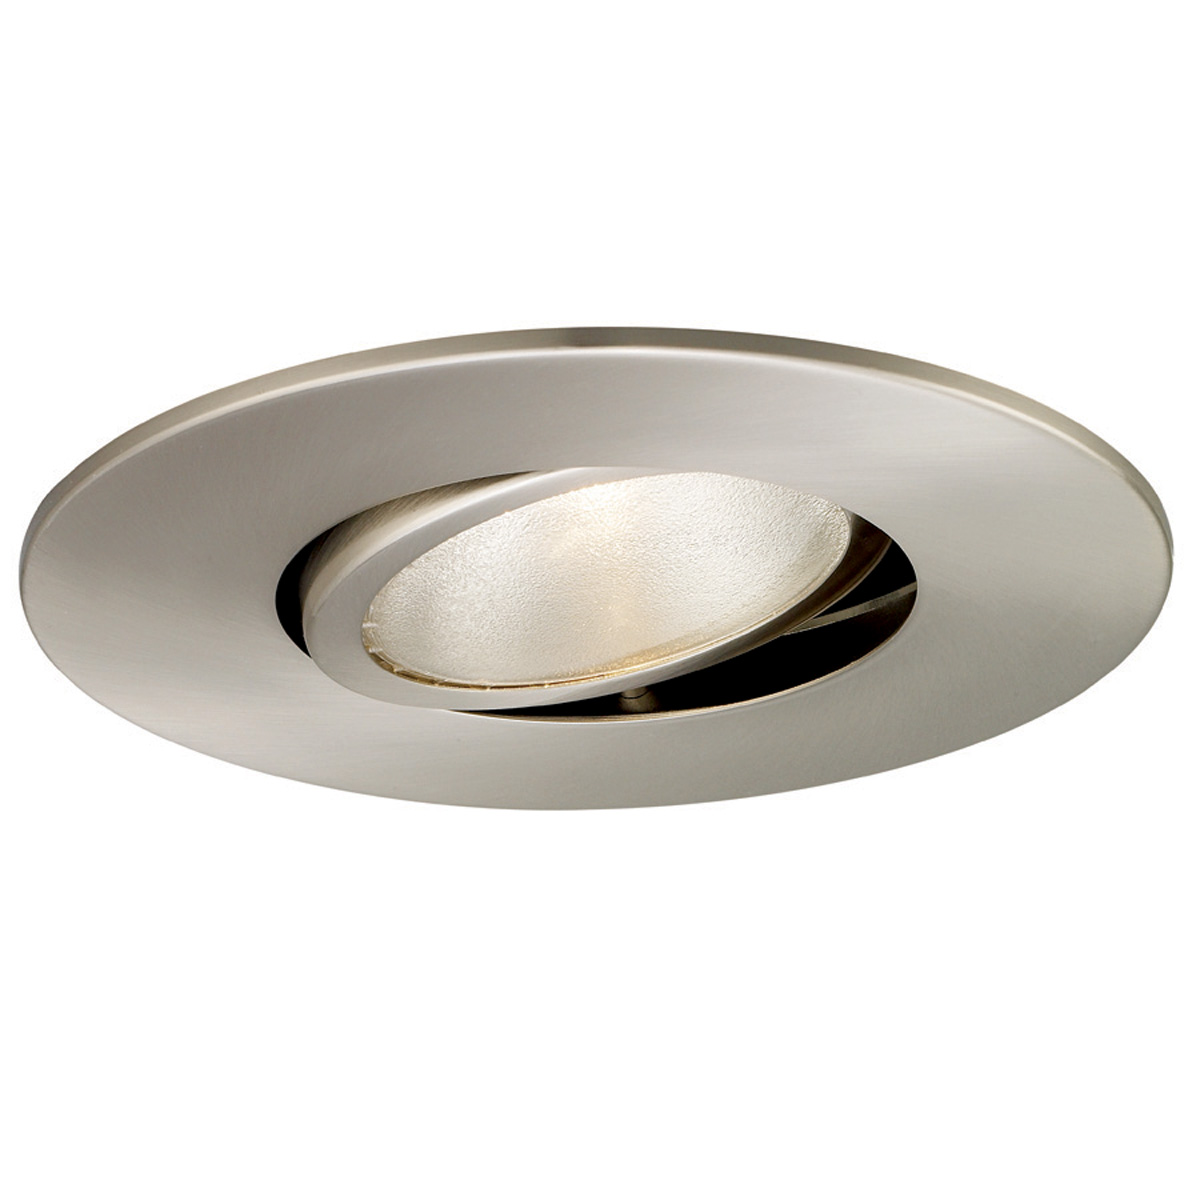 6 Gimbal Ring Par30 Wac Lighting Co